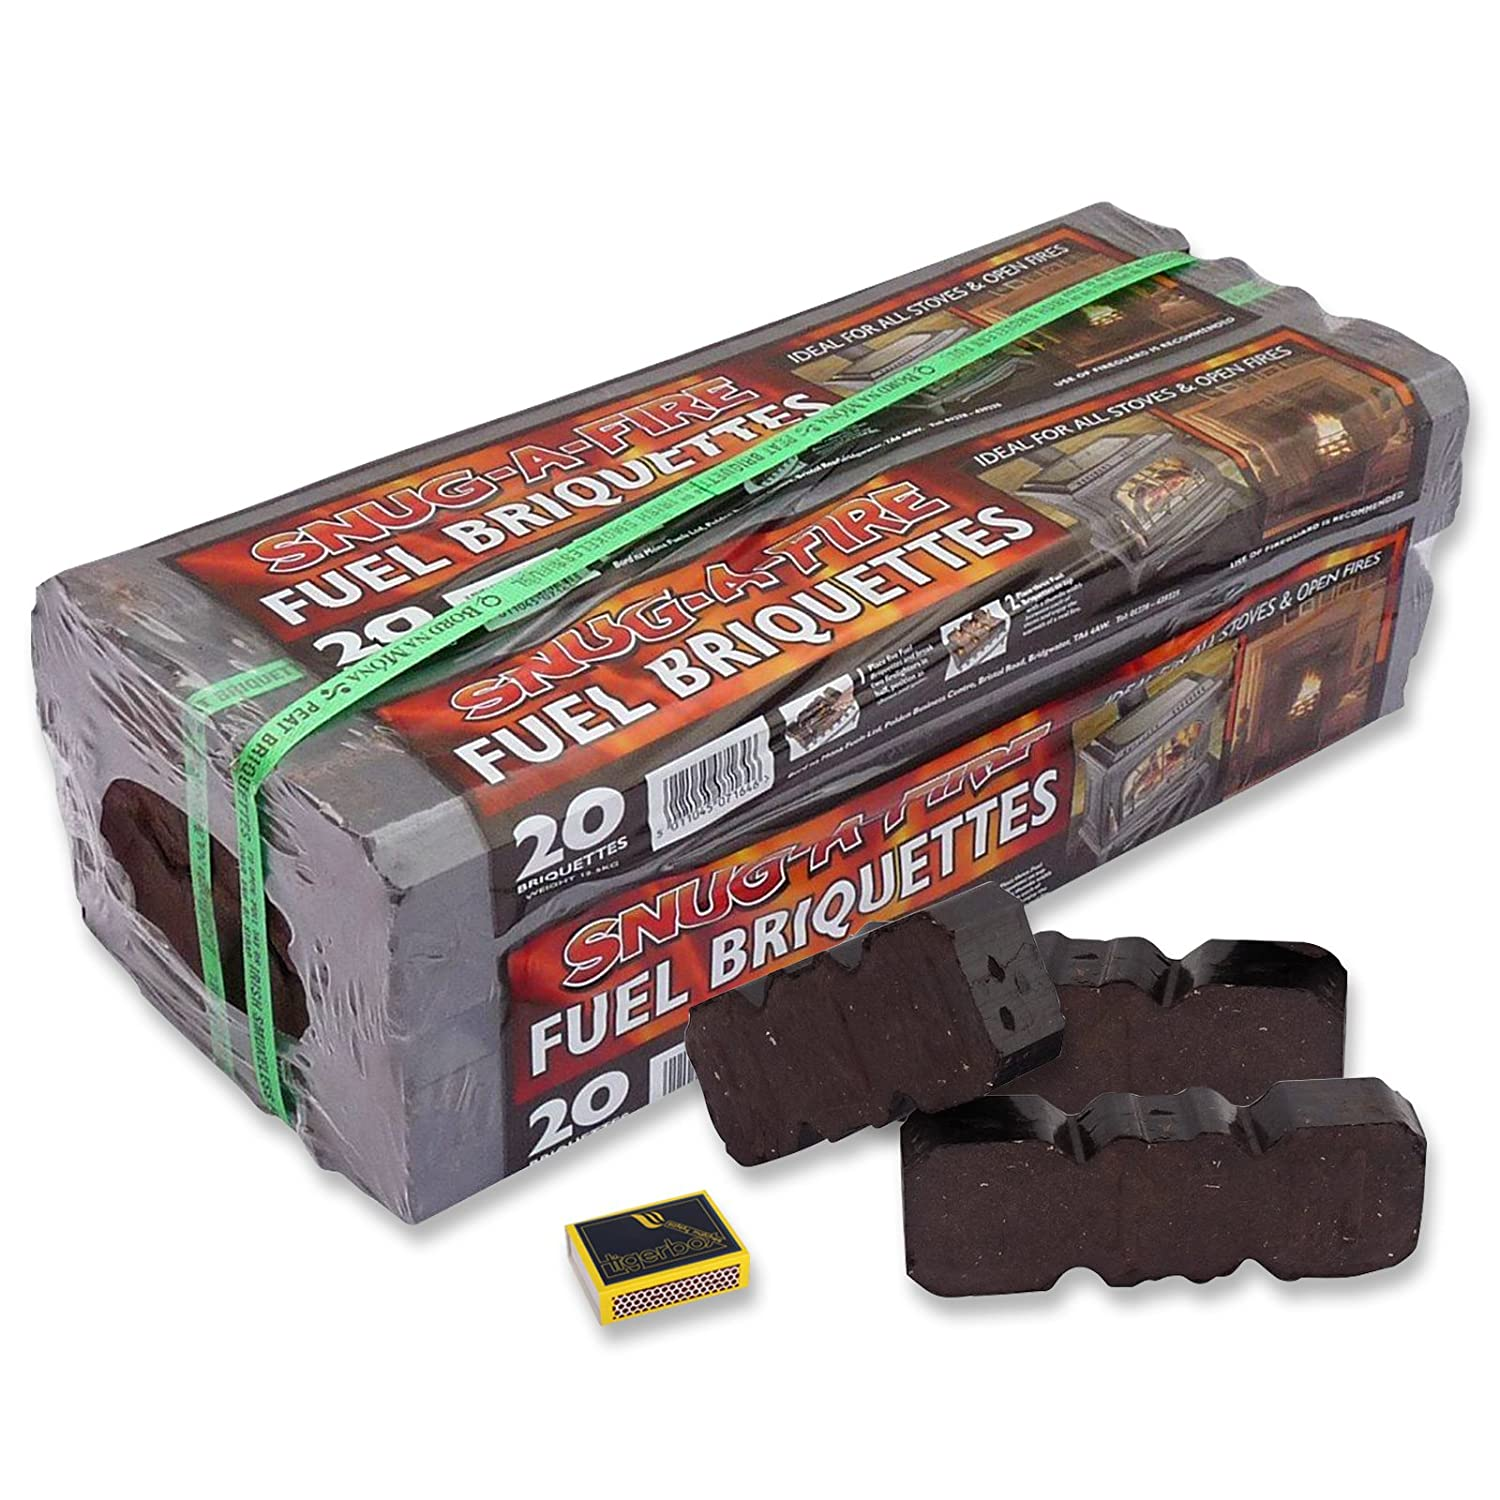 2 x Snug-A-Fire Irish Peat Briquettes 12.5KG Wrapped Bale & Tigerbox Safety Matches. 100% Natural Fuel.